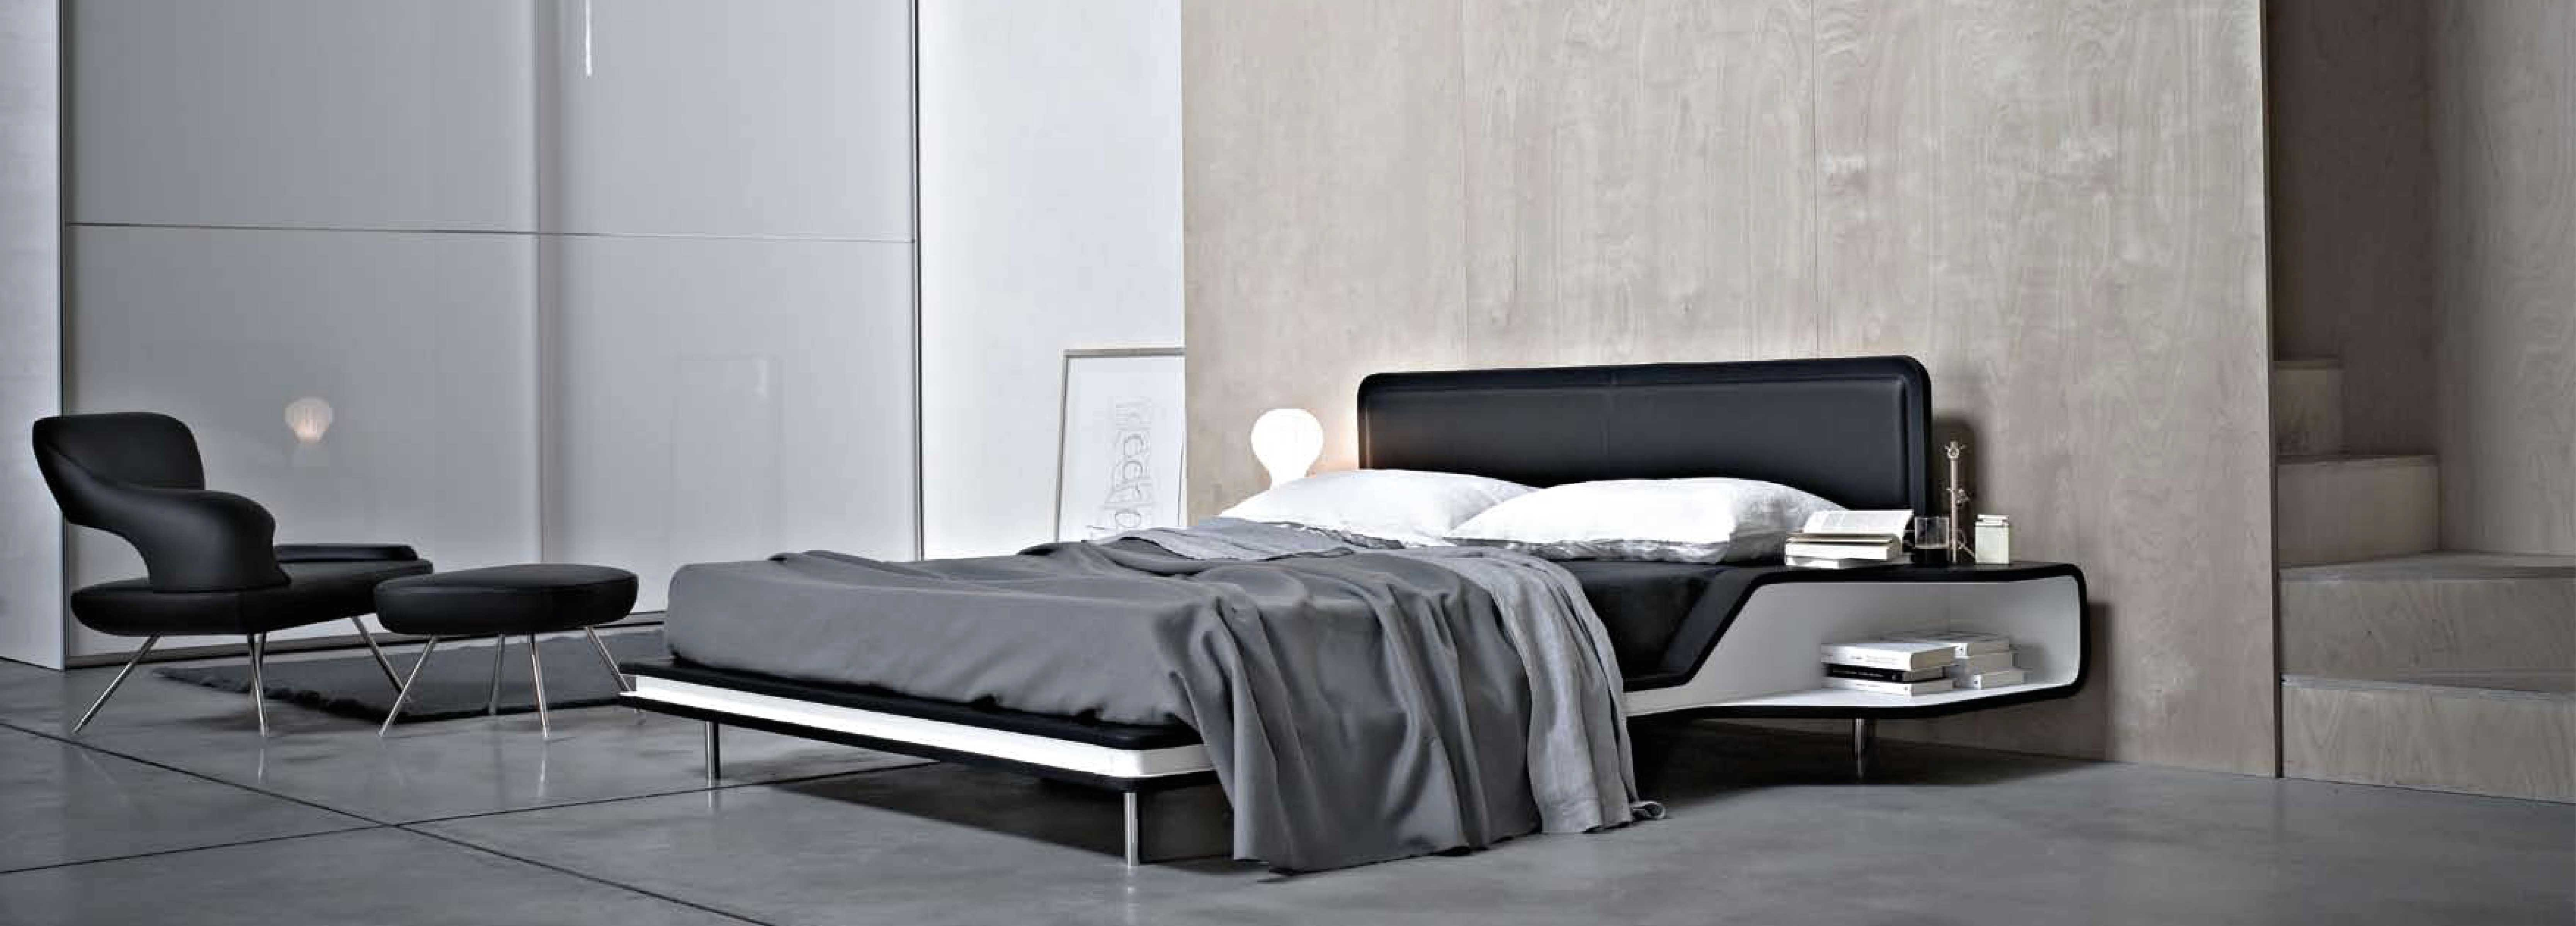 The bedroom of the minimal private house decorated by Hangar Design Group